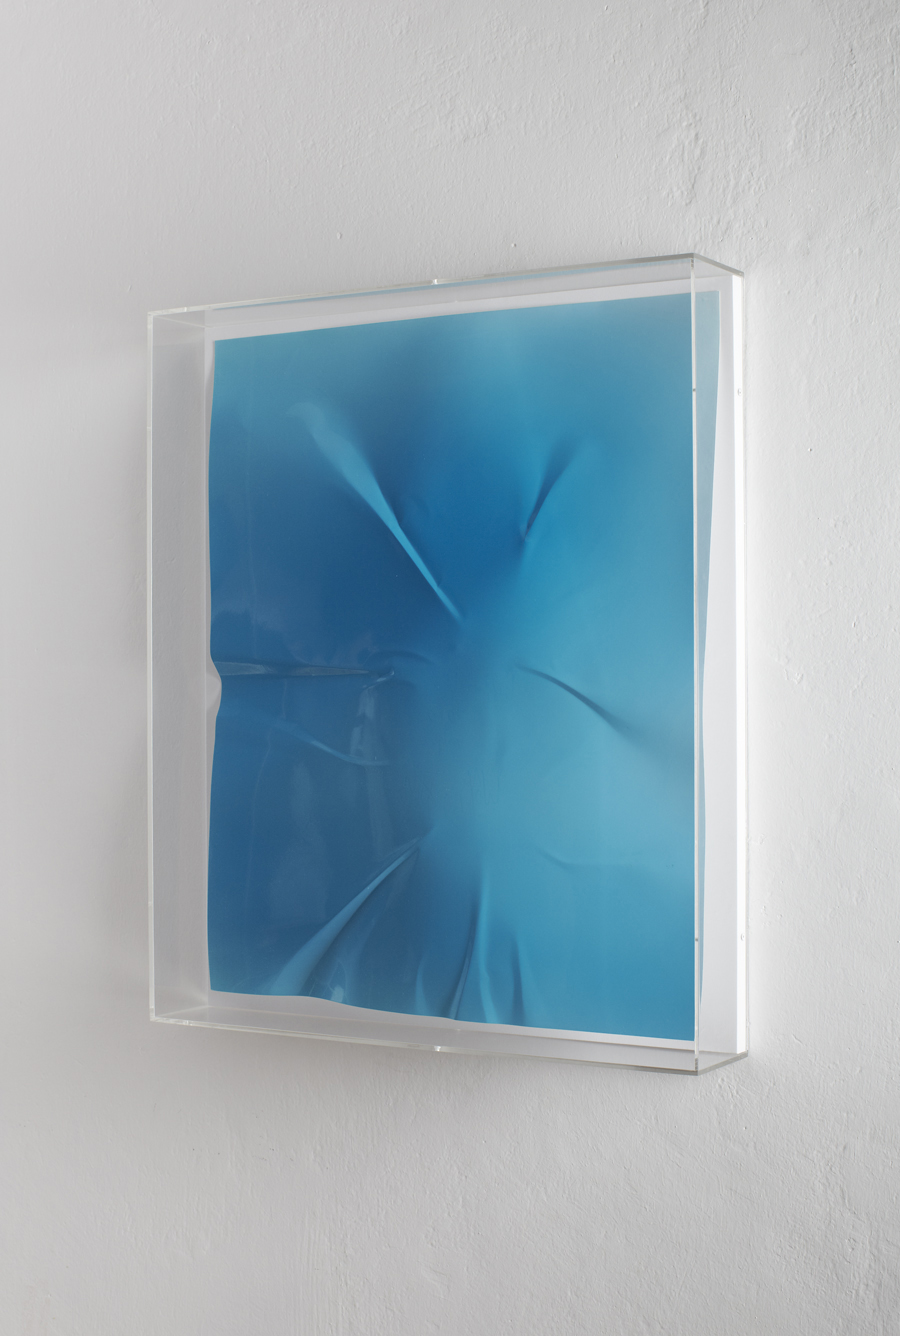 Image Above: ©Wolfgang Tillmans, Lighter, blue convex III, 2010 / Courtesy of Hatje Cantz